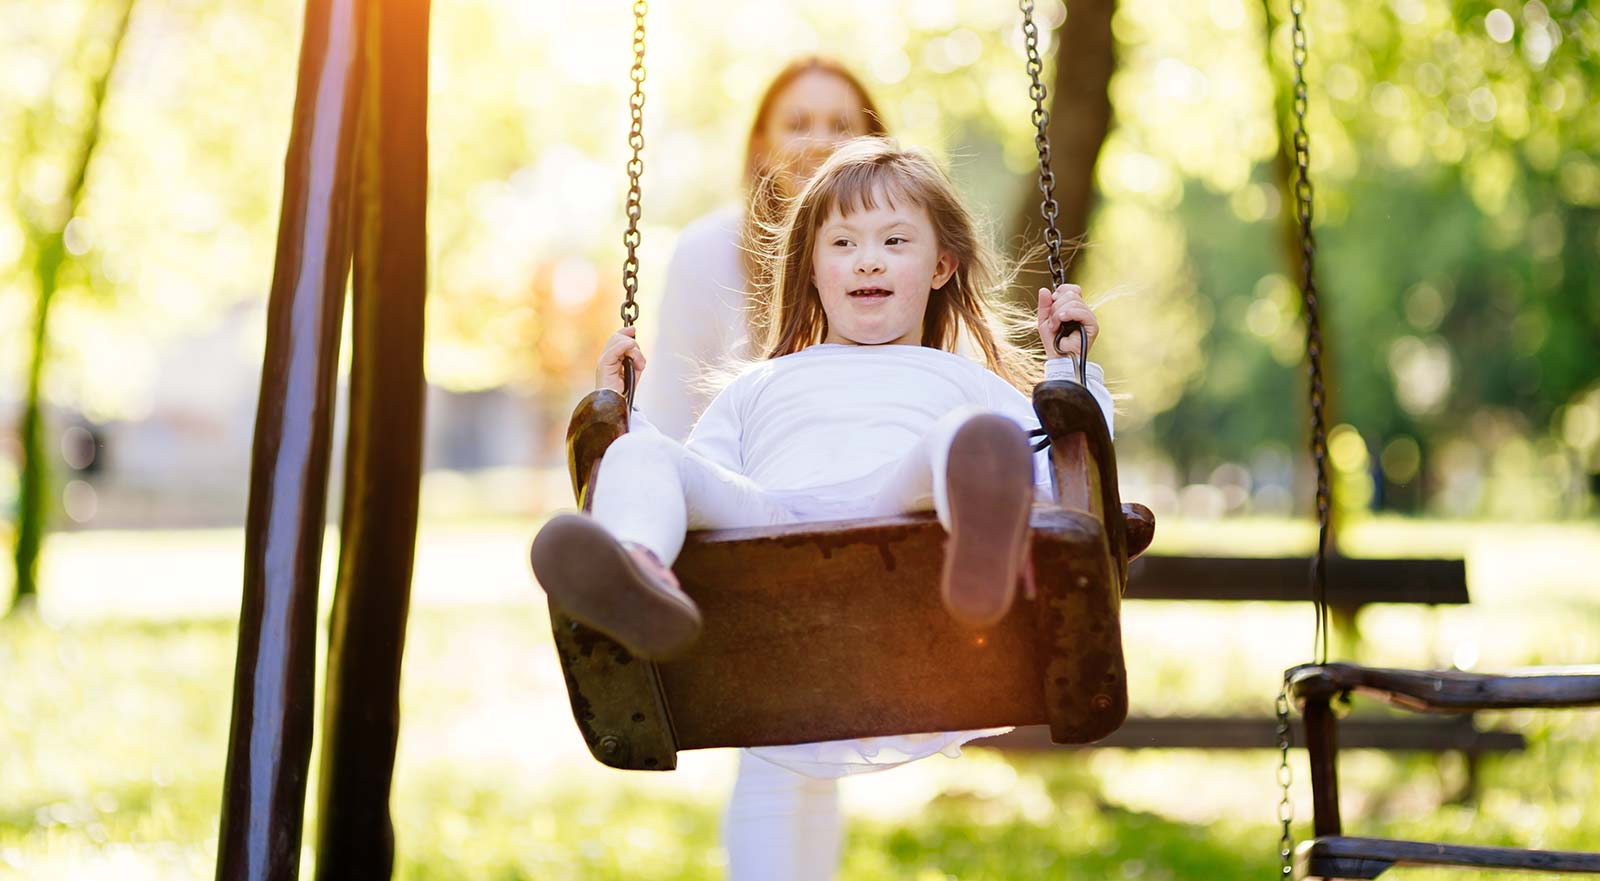 Disbled child playing on a swing